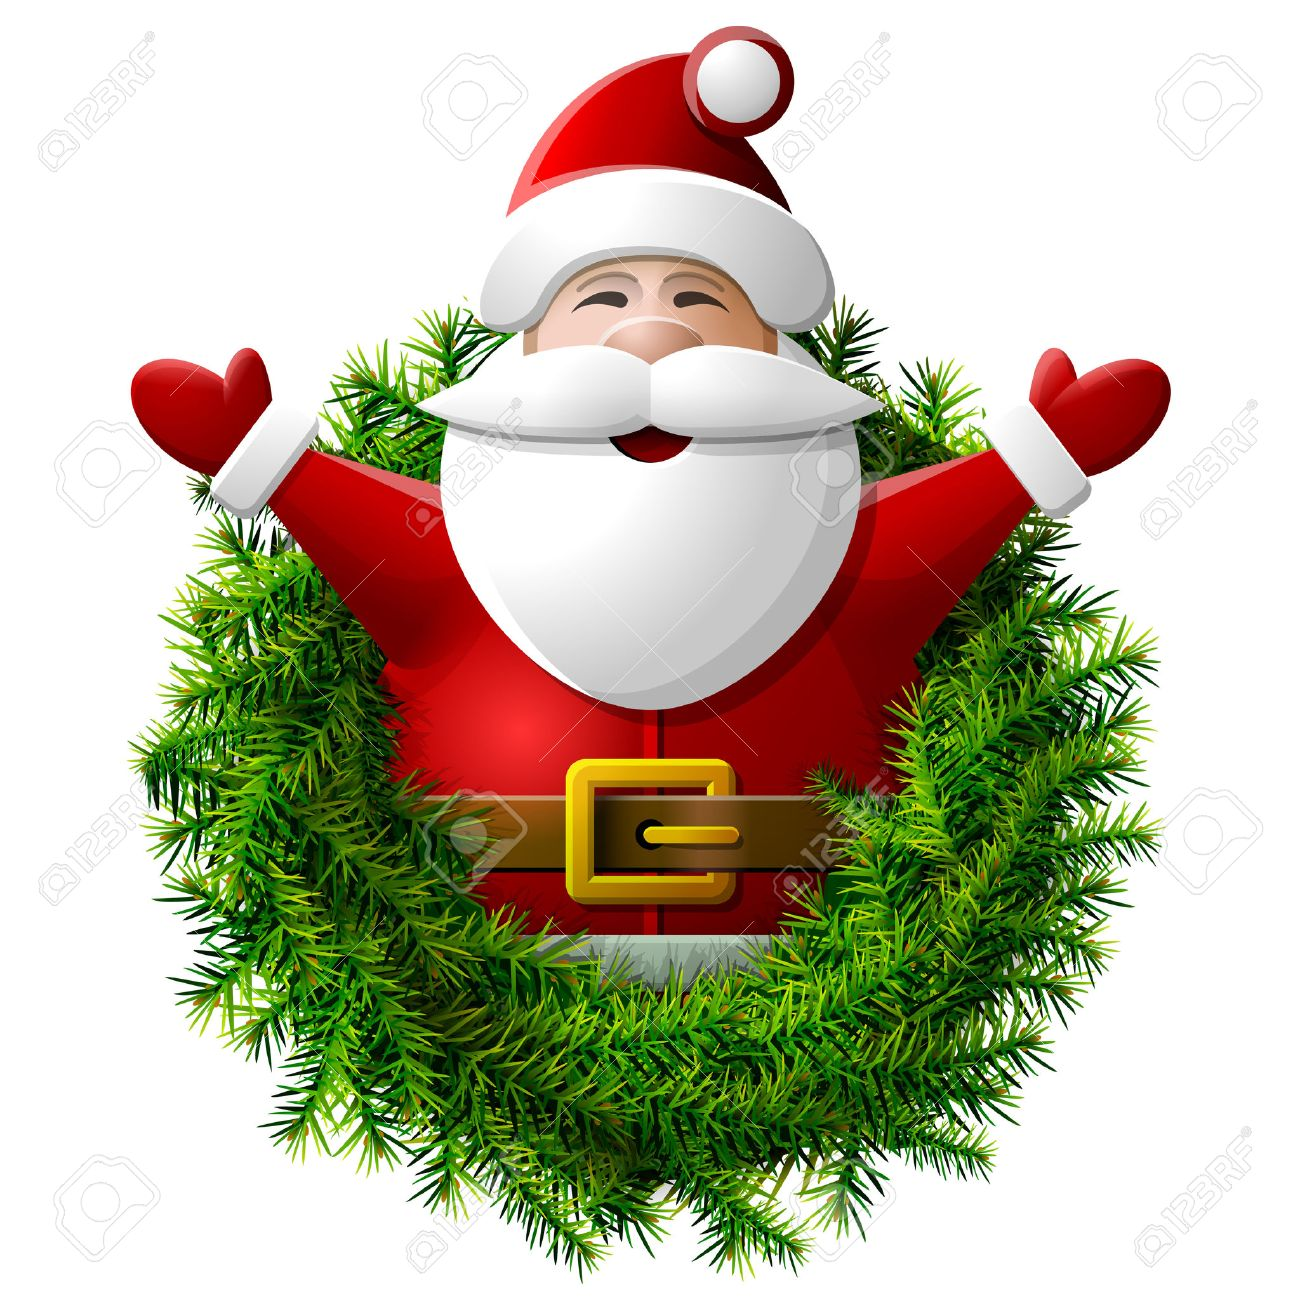 santa claus to waist with his hands up wreath of christmas tree